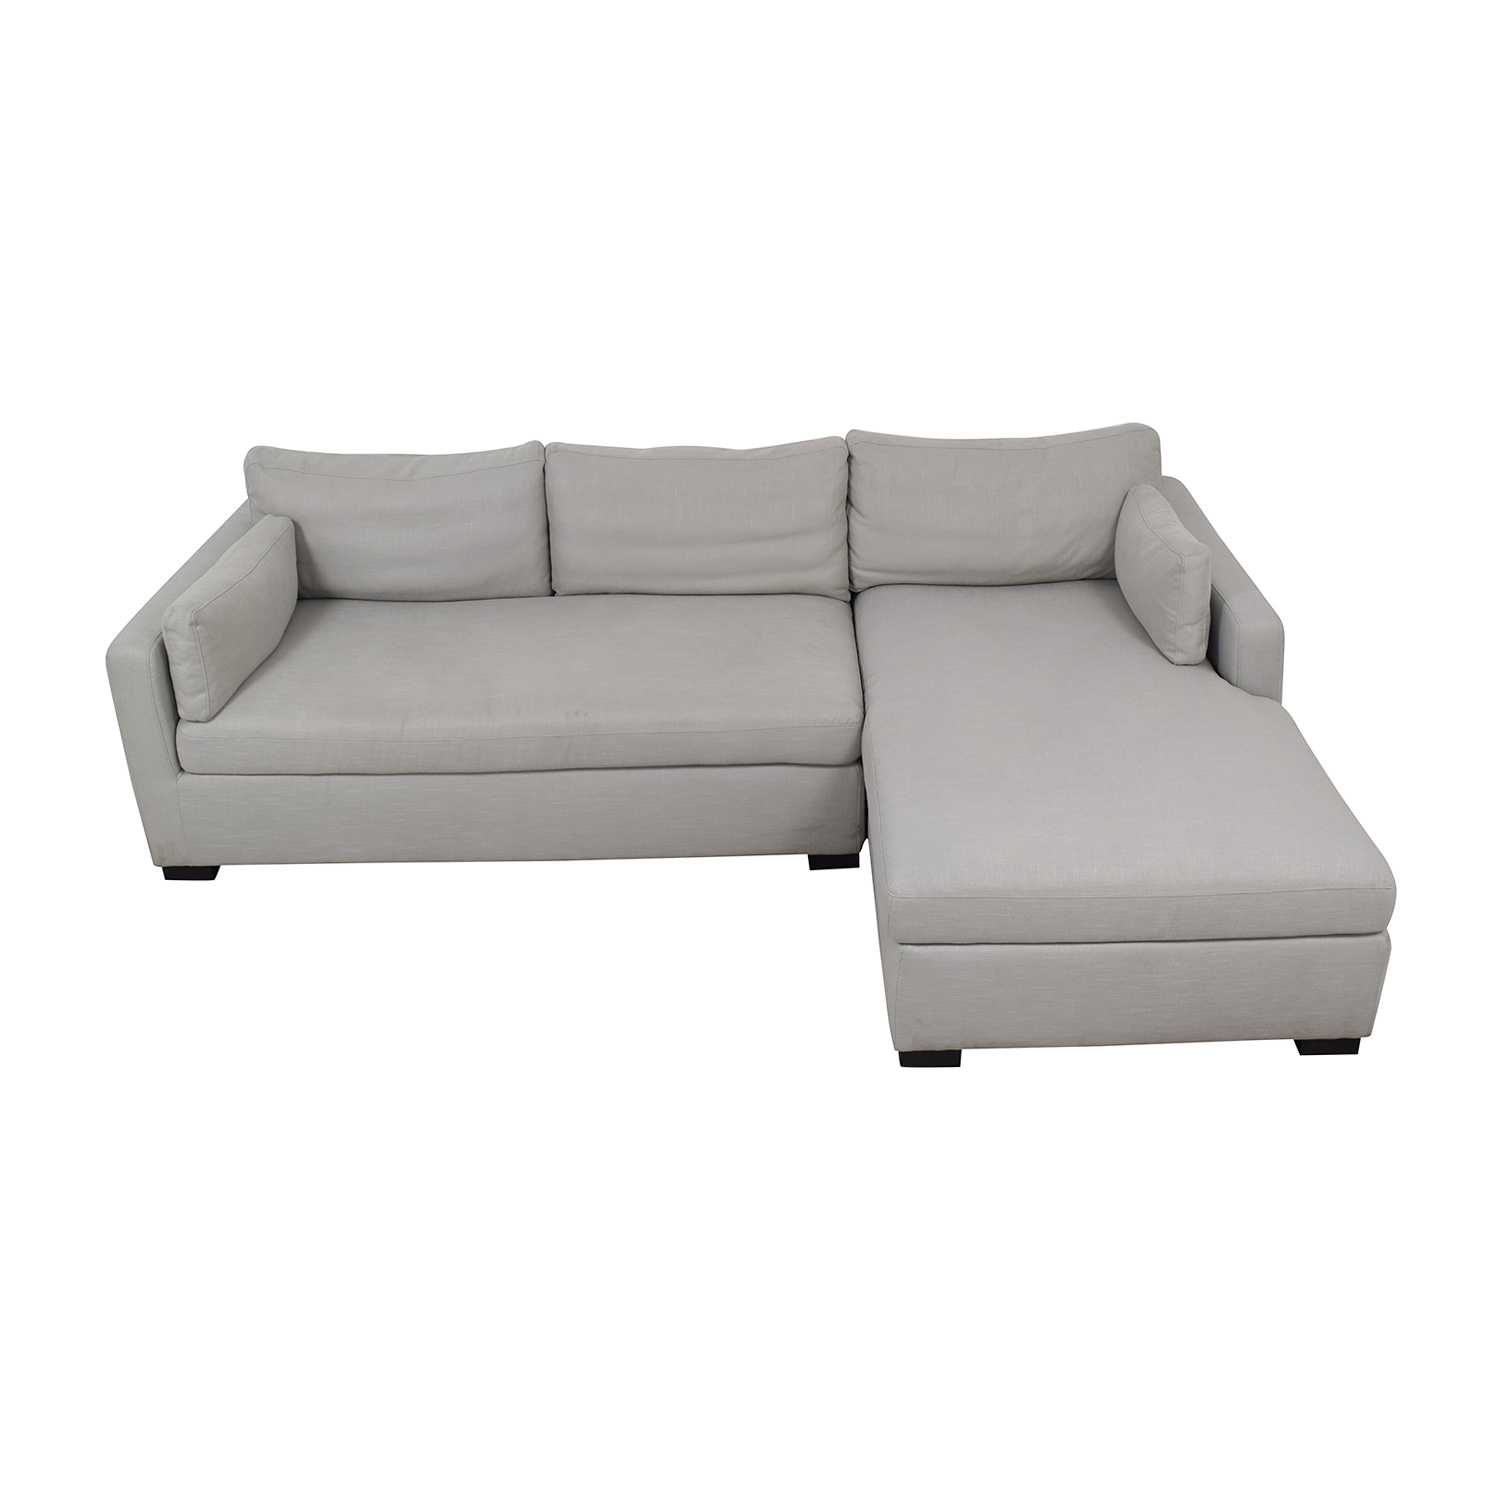 Interior Define Charley Beige Heavy Cloth Right Chaise Sectional beige